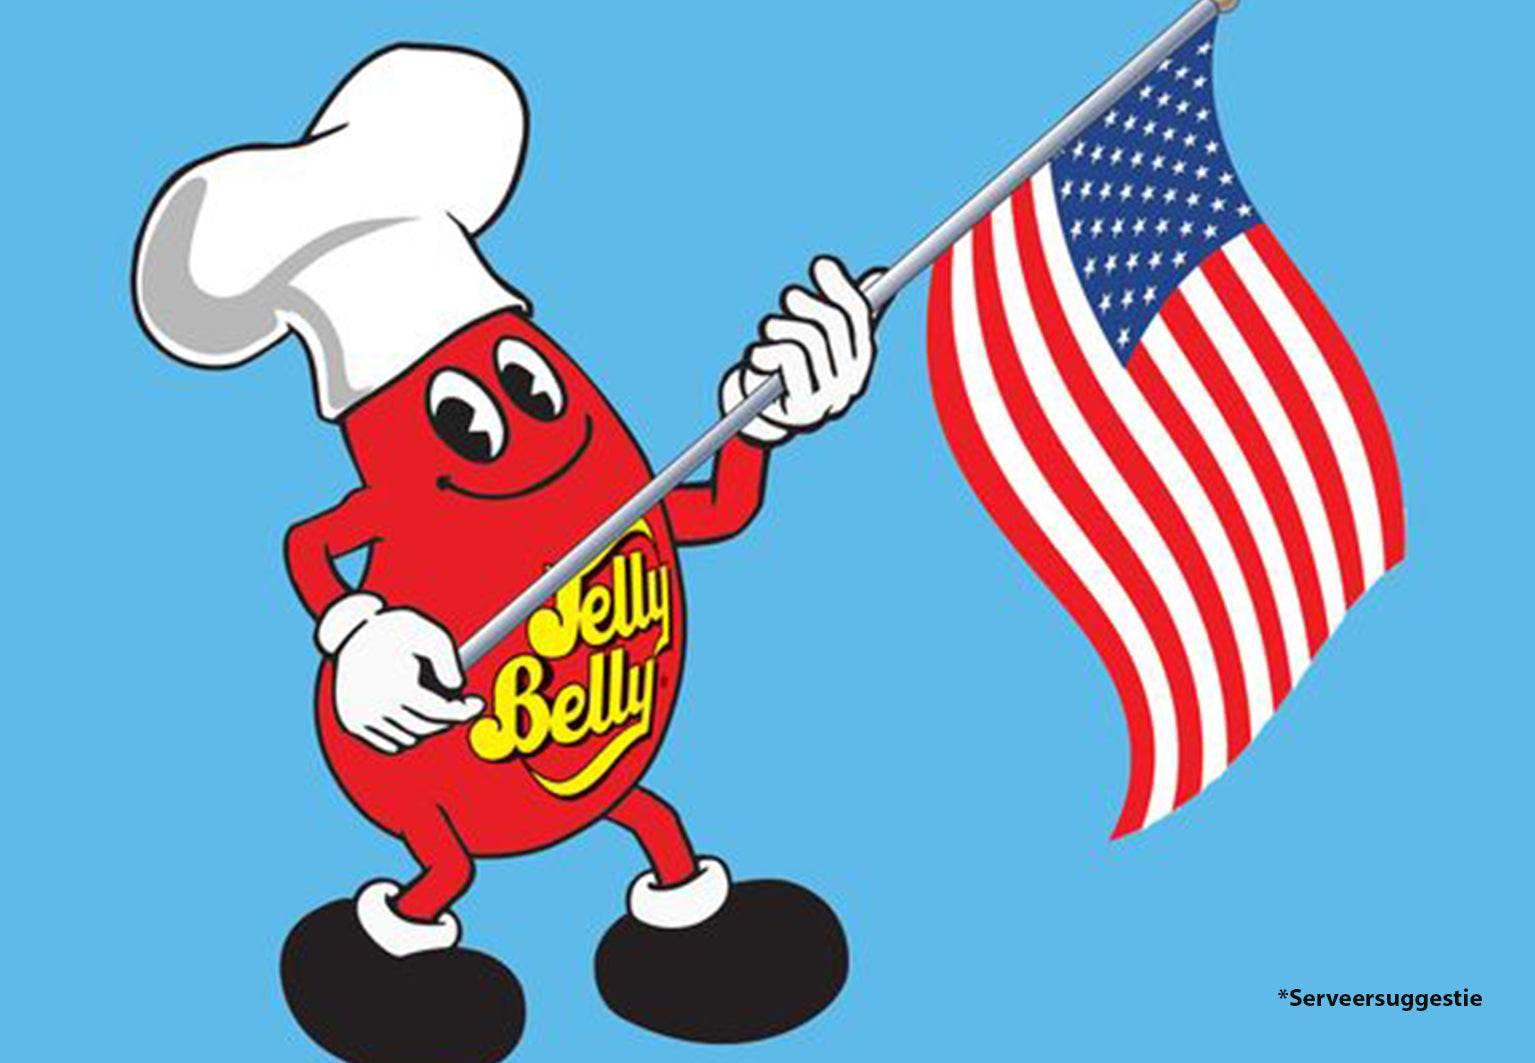 Jelly Belly American classic